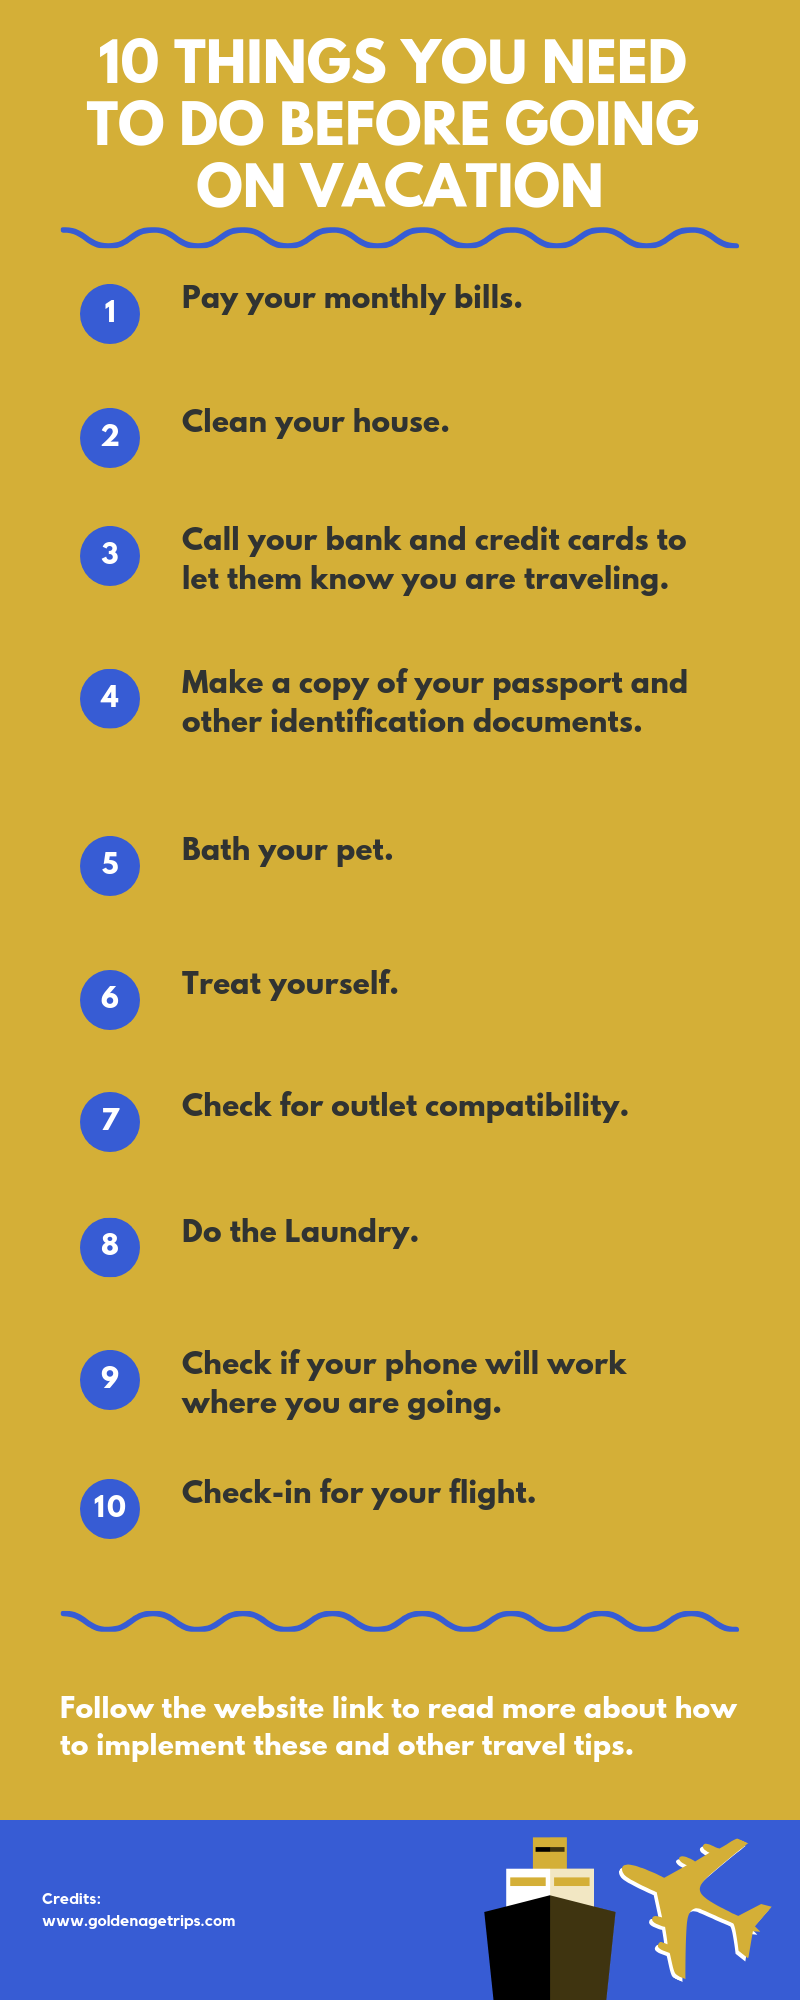 Most of the planning has ended, but it is still quite early to finish packing. What can you do in the meantime? Here are ten things you need to do before going on vacation while you wait for your journey to start.